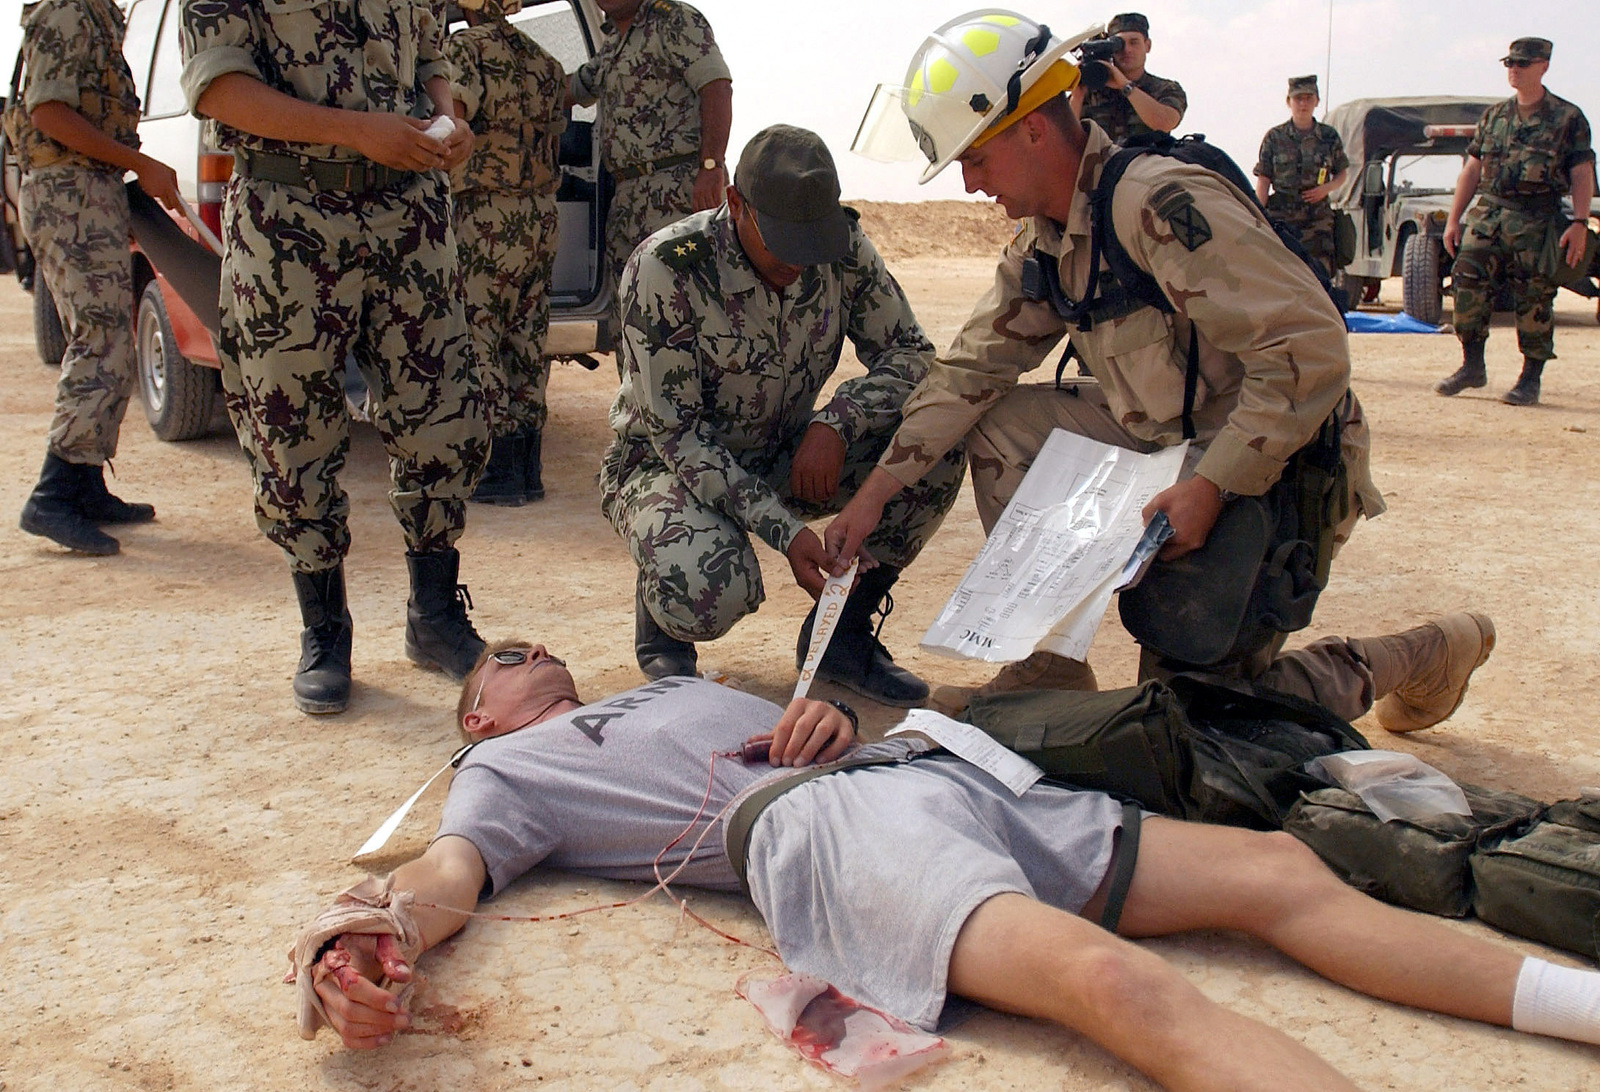 During a BRIGHT STAR mass-casualties exercise, an Egyptian